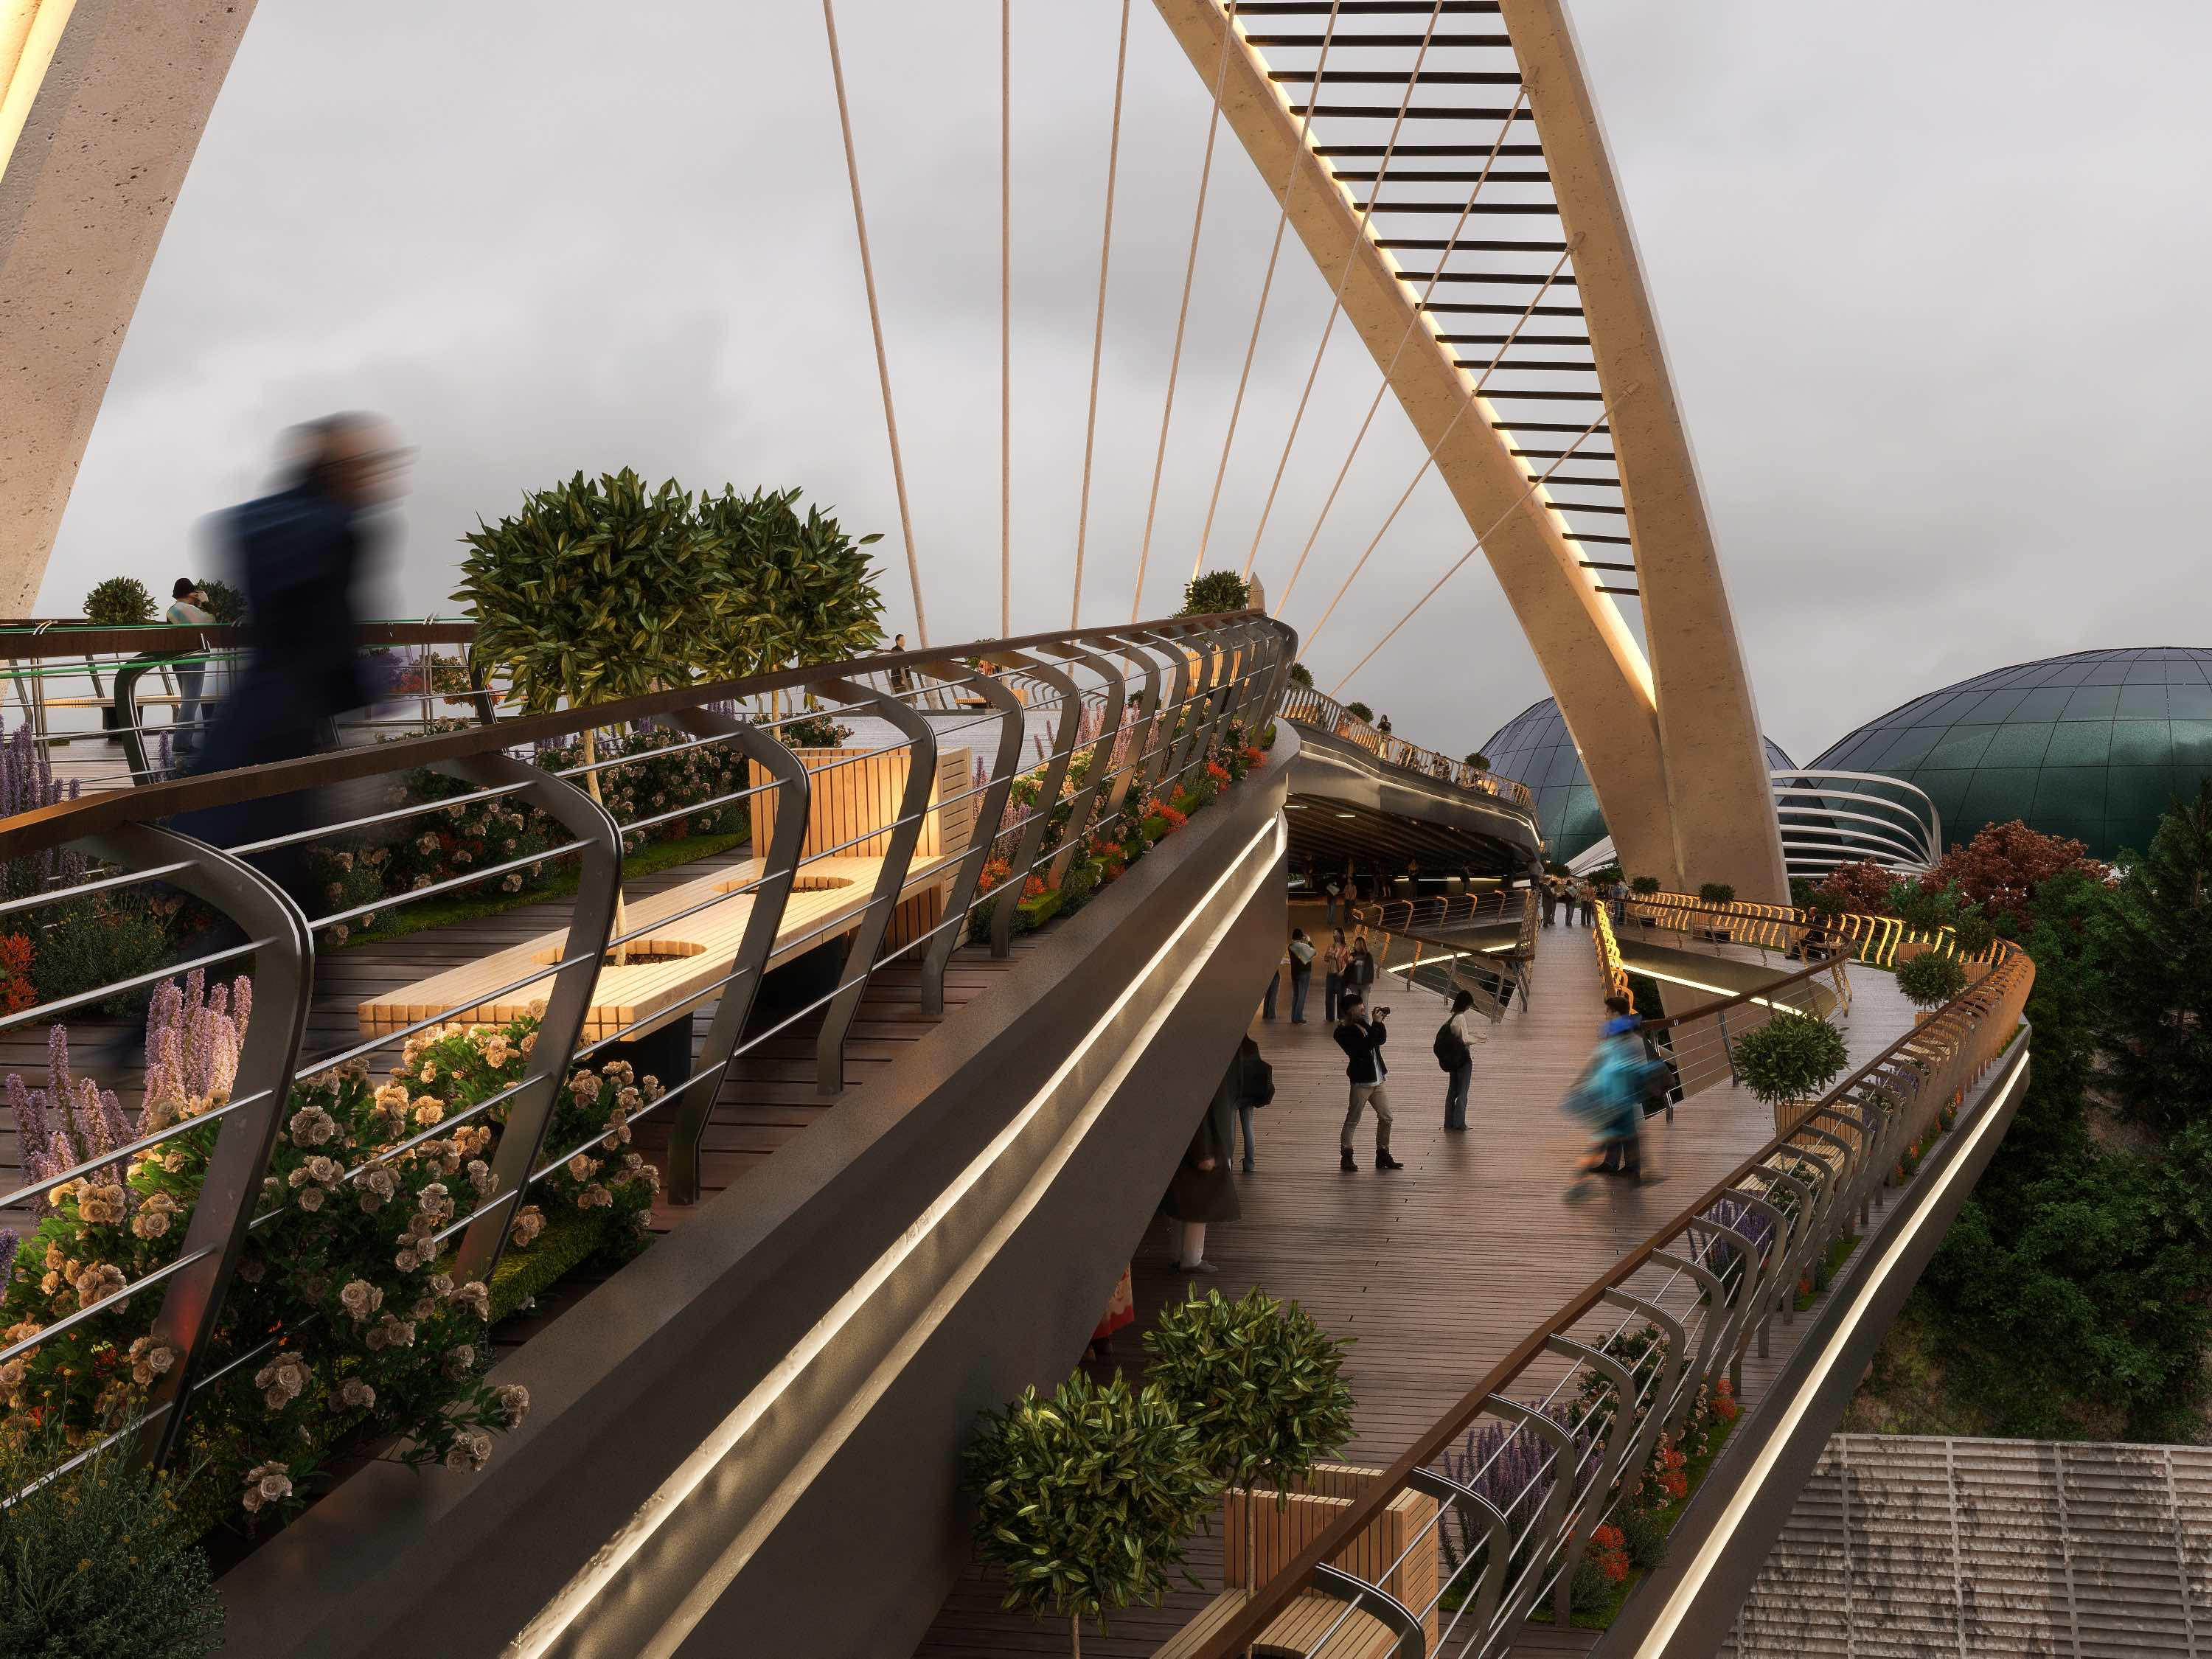 El Goli pedestrian bridge designed by Farho